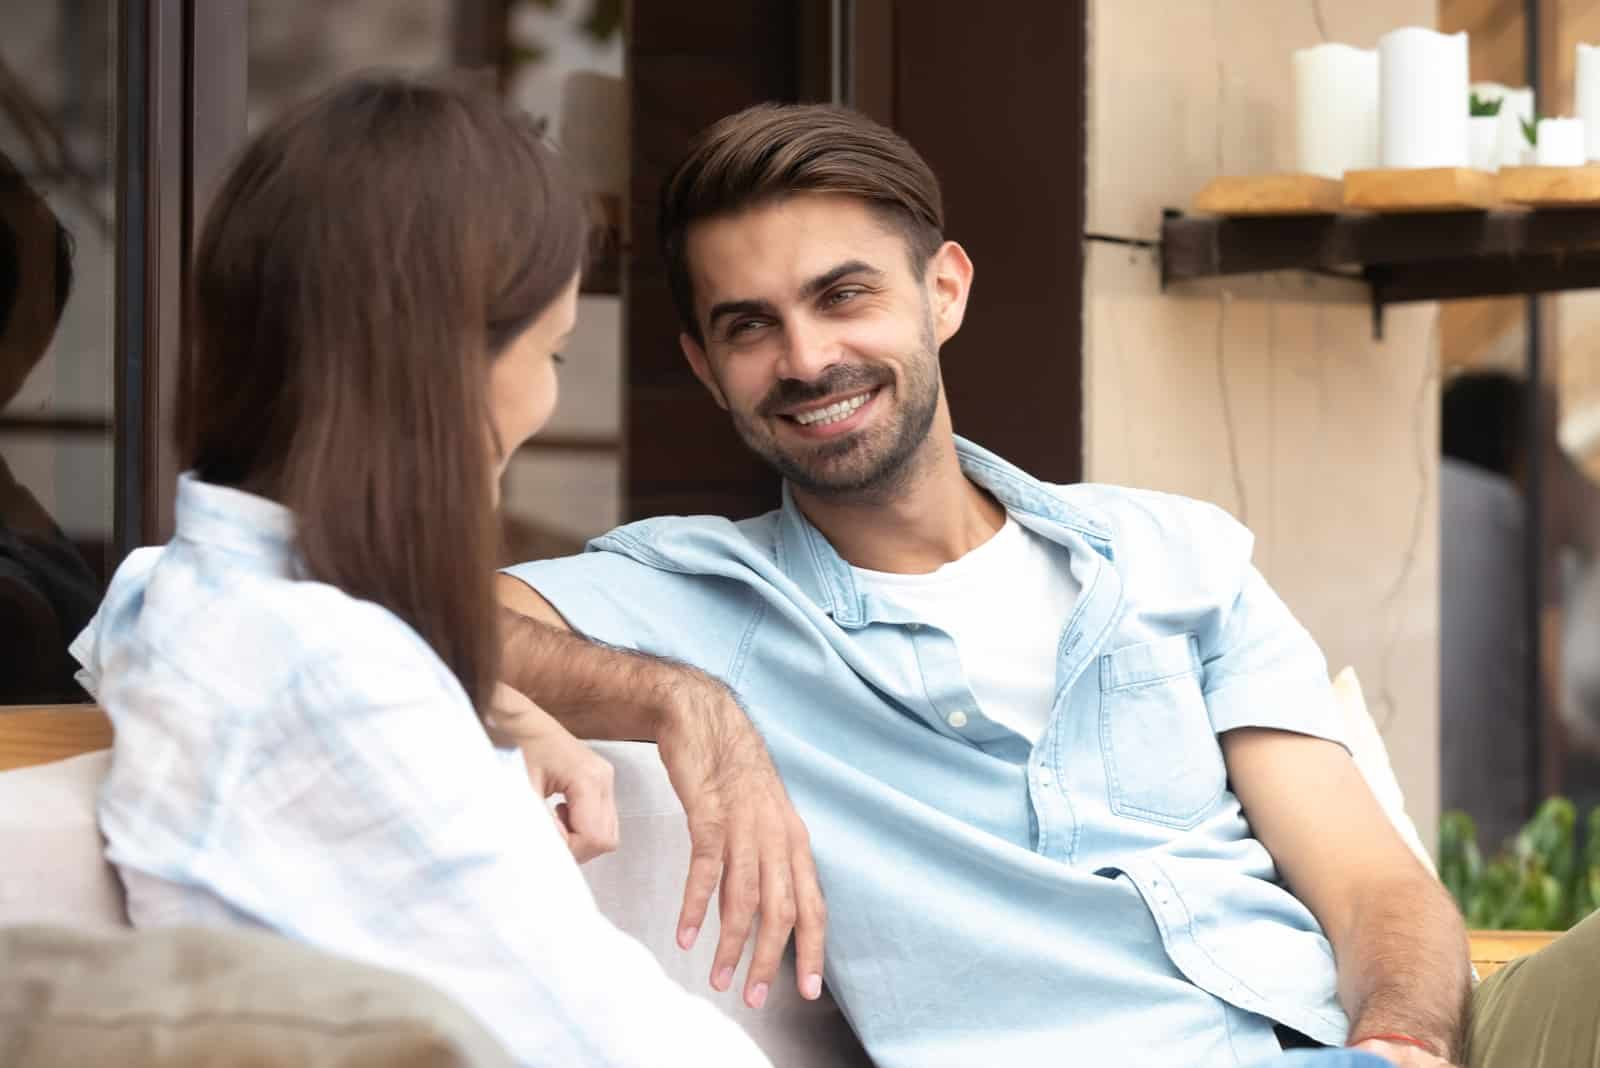 man in blue shirt smiling while looking at woman